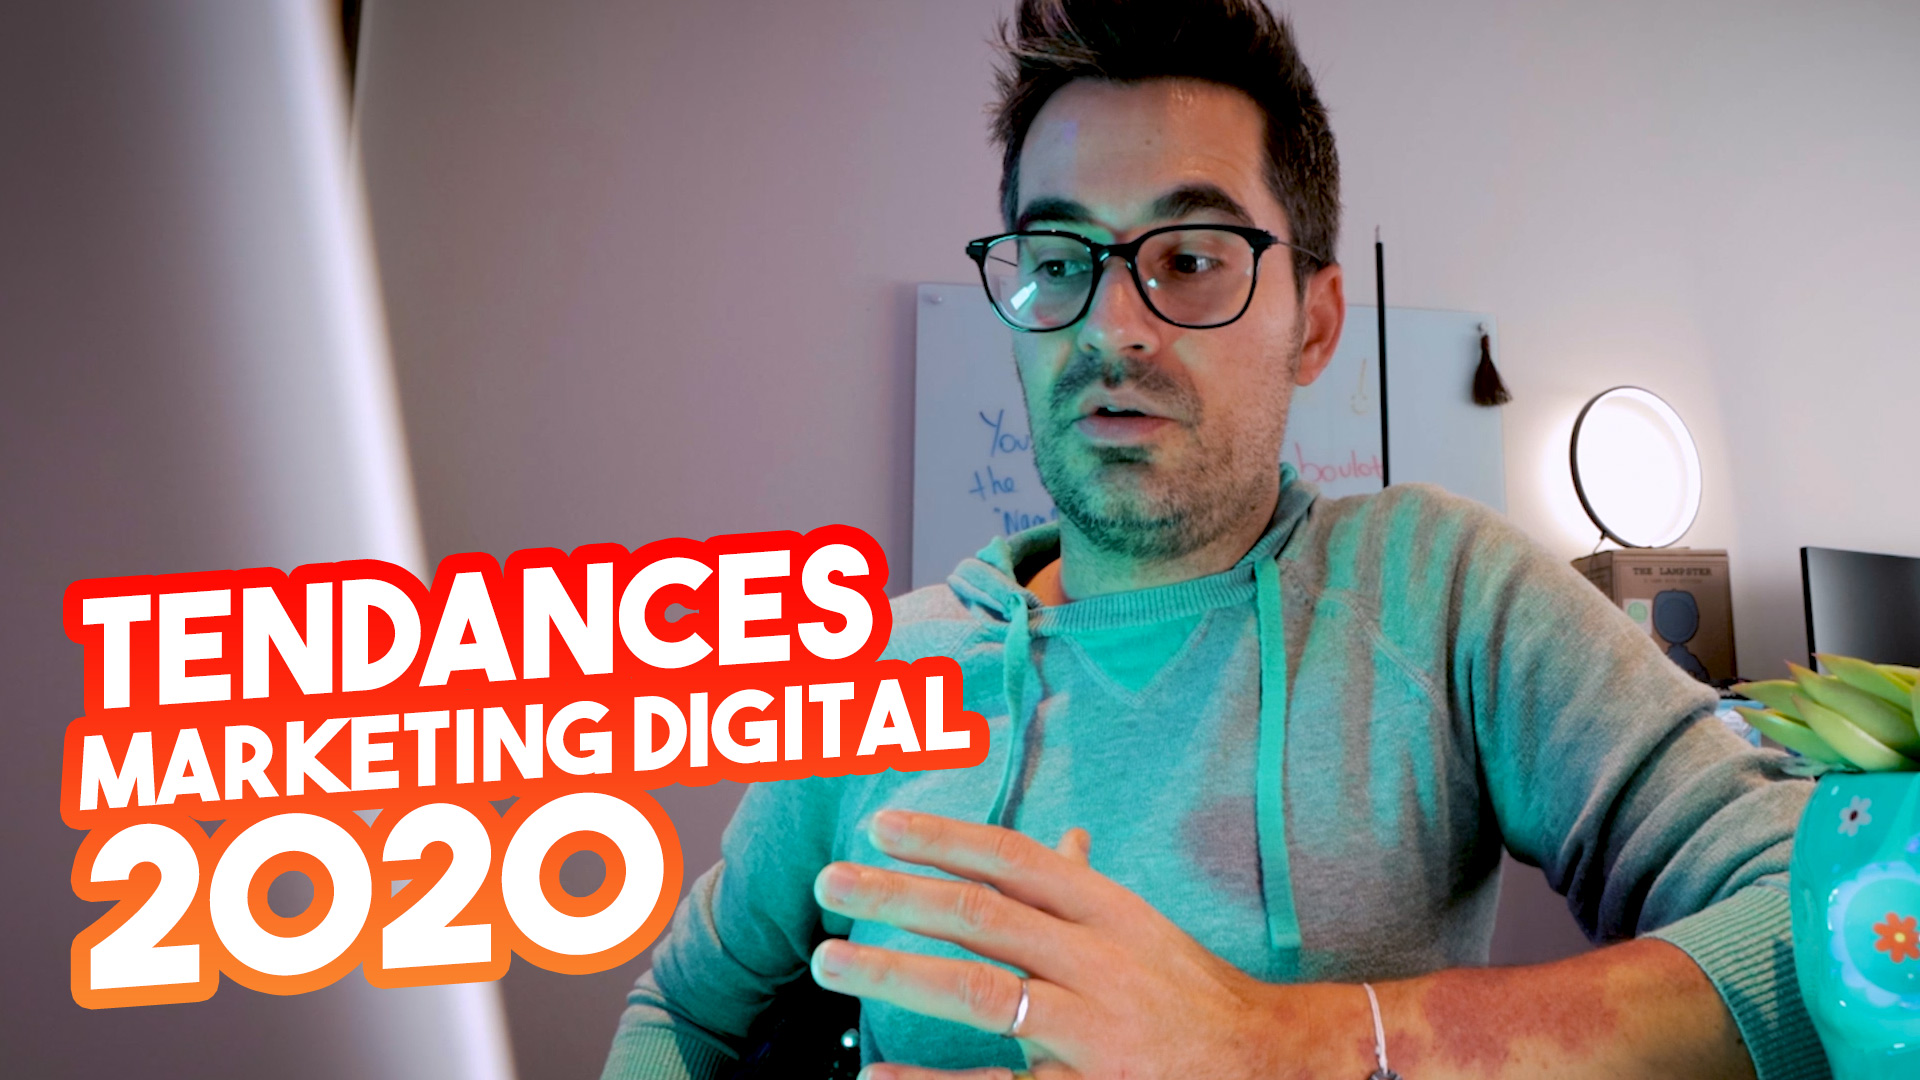 Boostez votre stratégie marketing digital en 2020 – Tendances Marketing Digital 2020